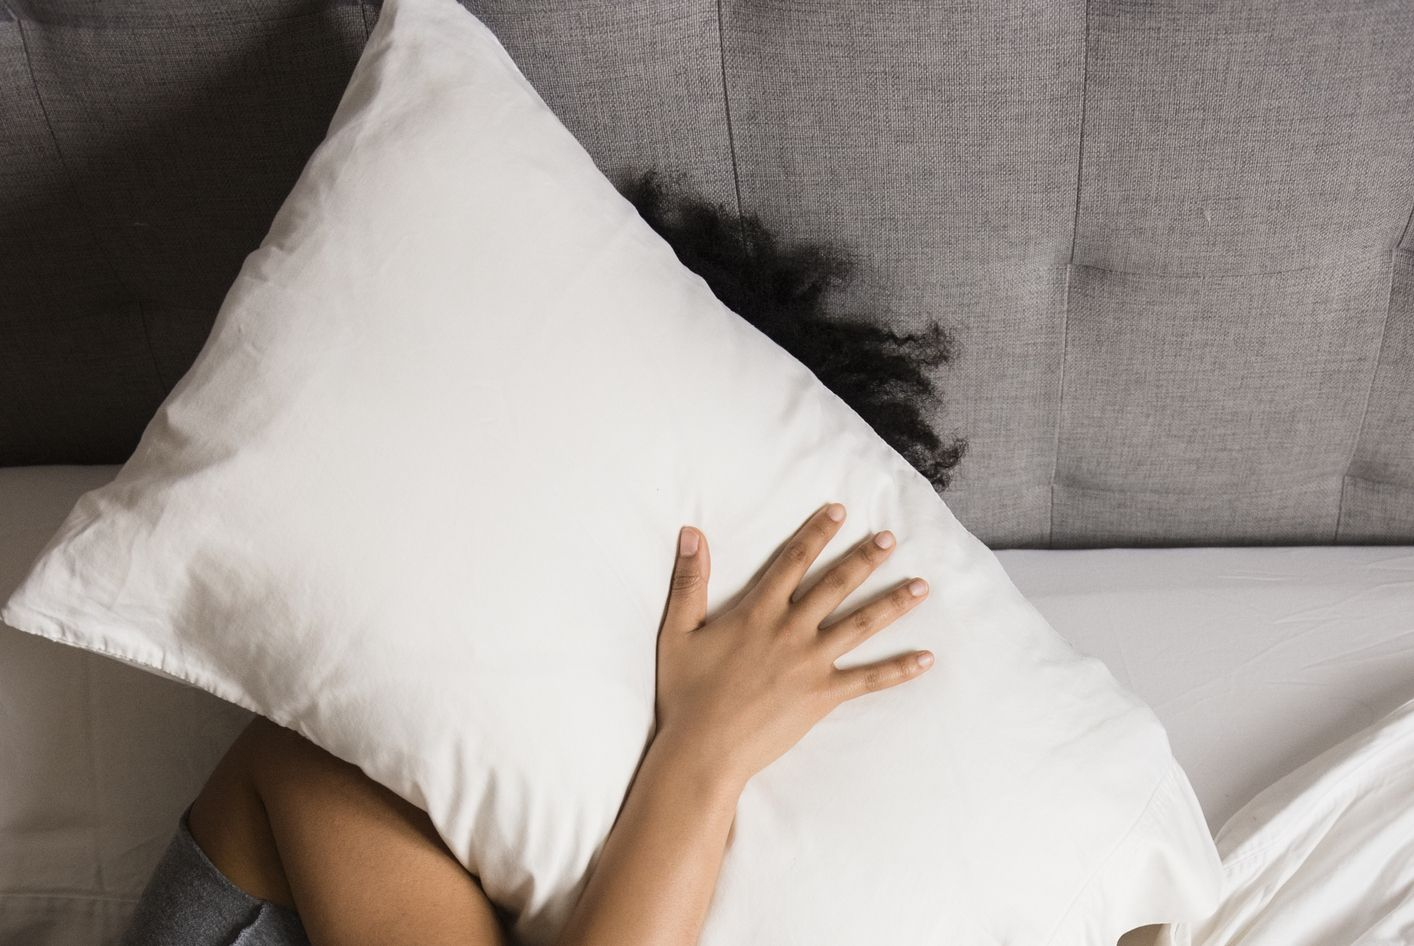 African American woman laying on bed hiding face under pillow